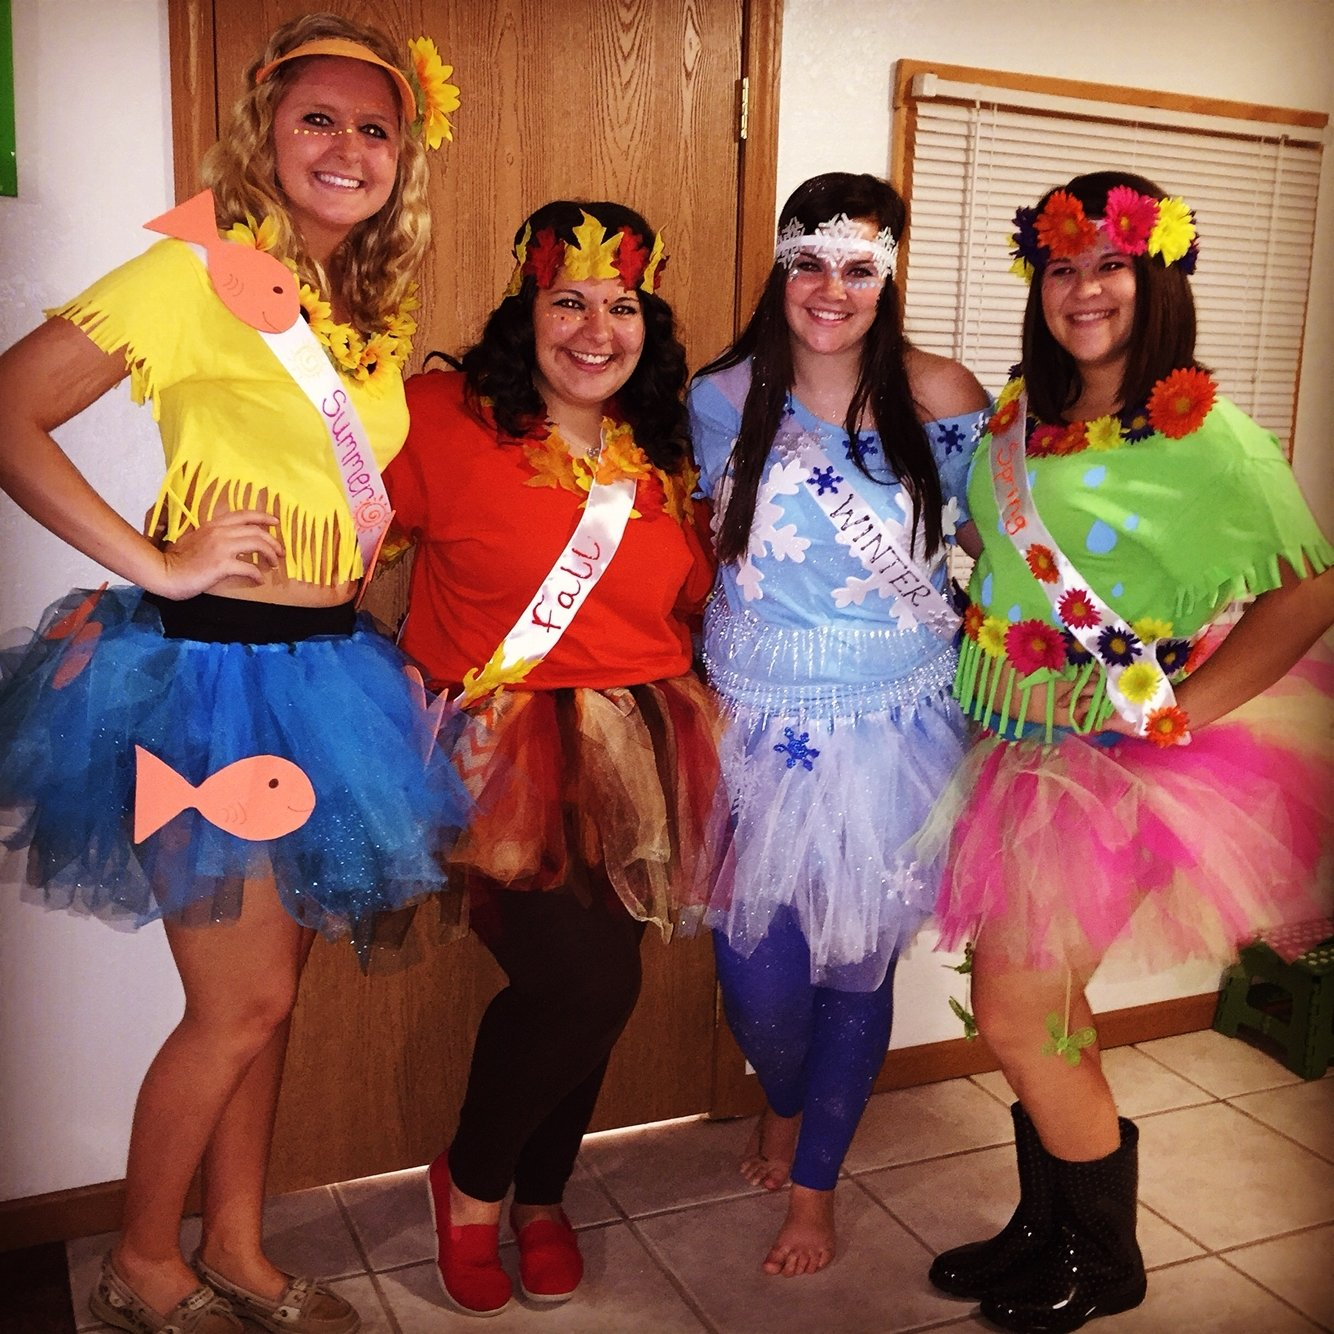 10 Great Halloween Costume Ideas For 3 Women four seasons group halloween costume 3 pinterest group 7 2020